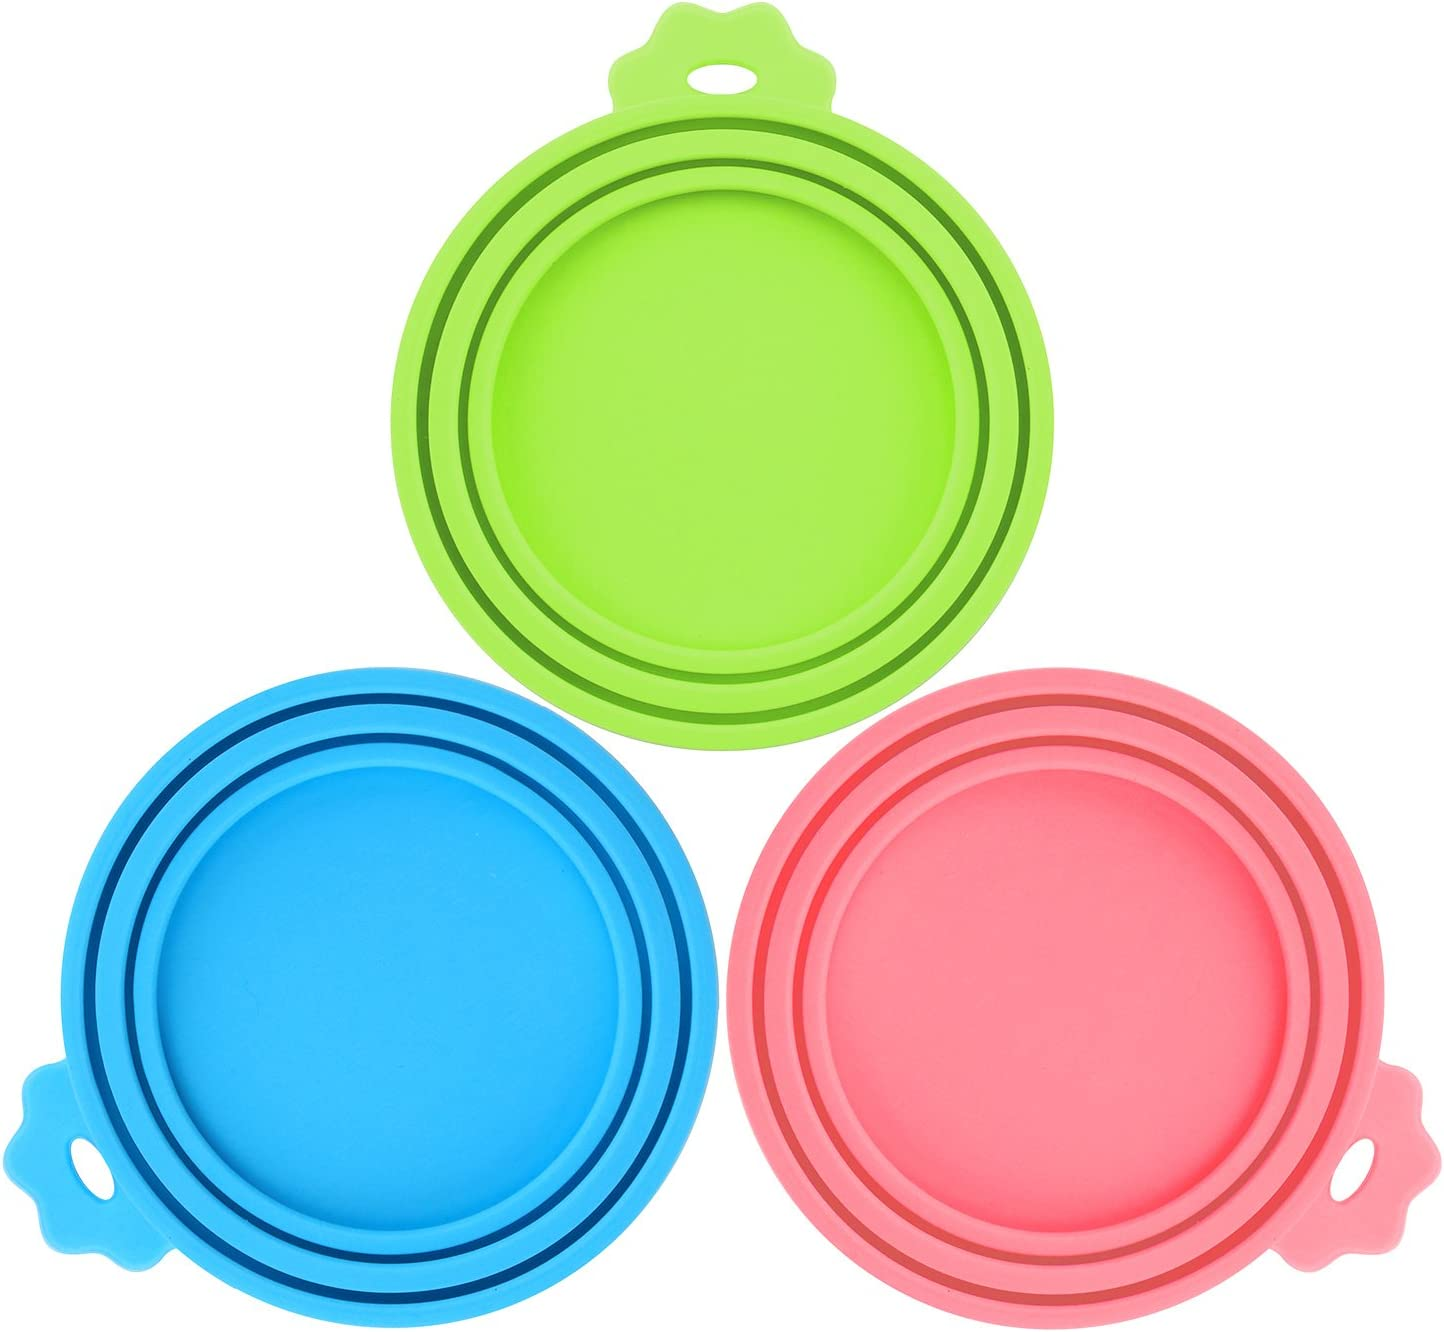 Comtim Pet Food Can Covers 3 Pack Silicone Can Lids Caps for Dog Cat Wet Food,Universal Size Fit Most Standard Size Canned Dog and Cat Food